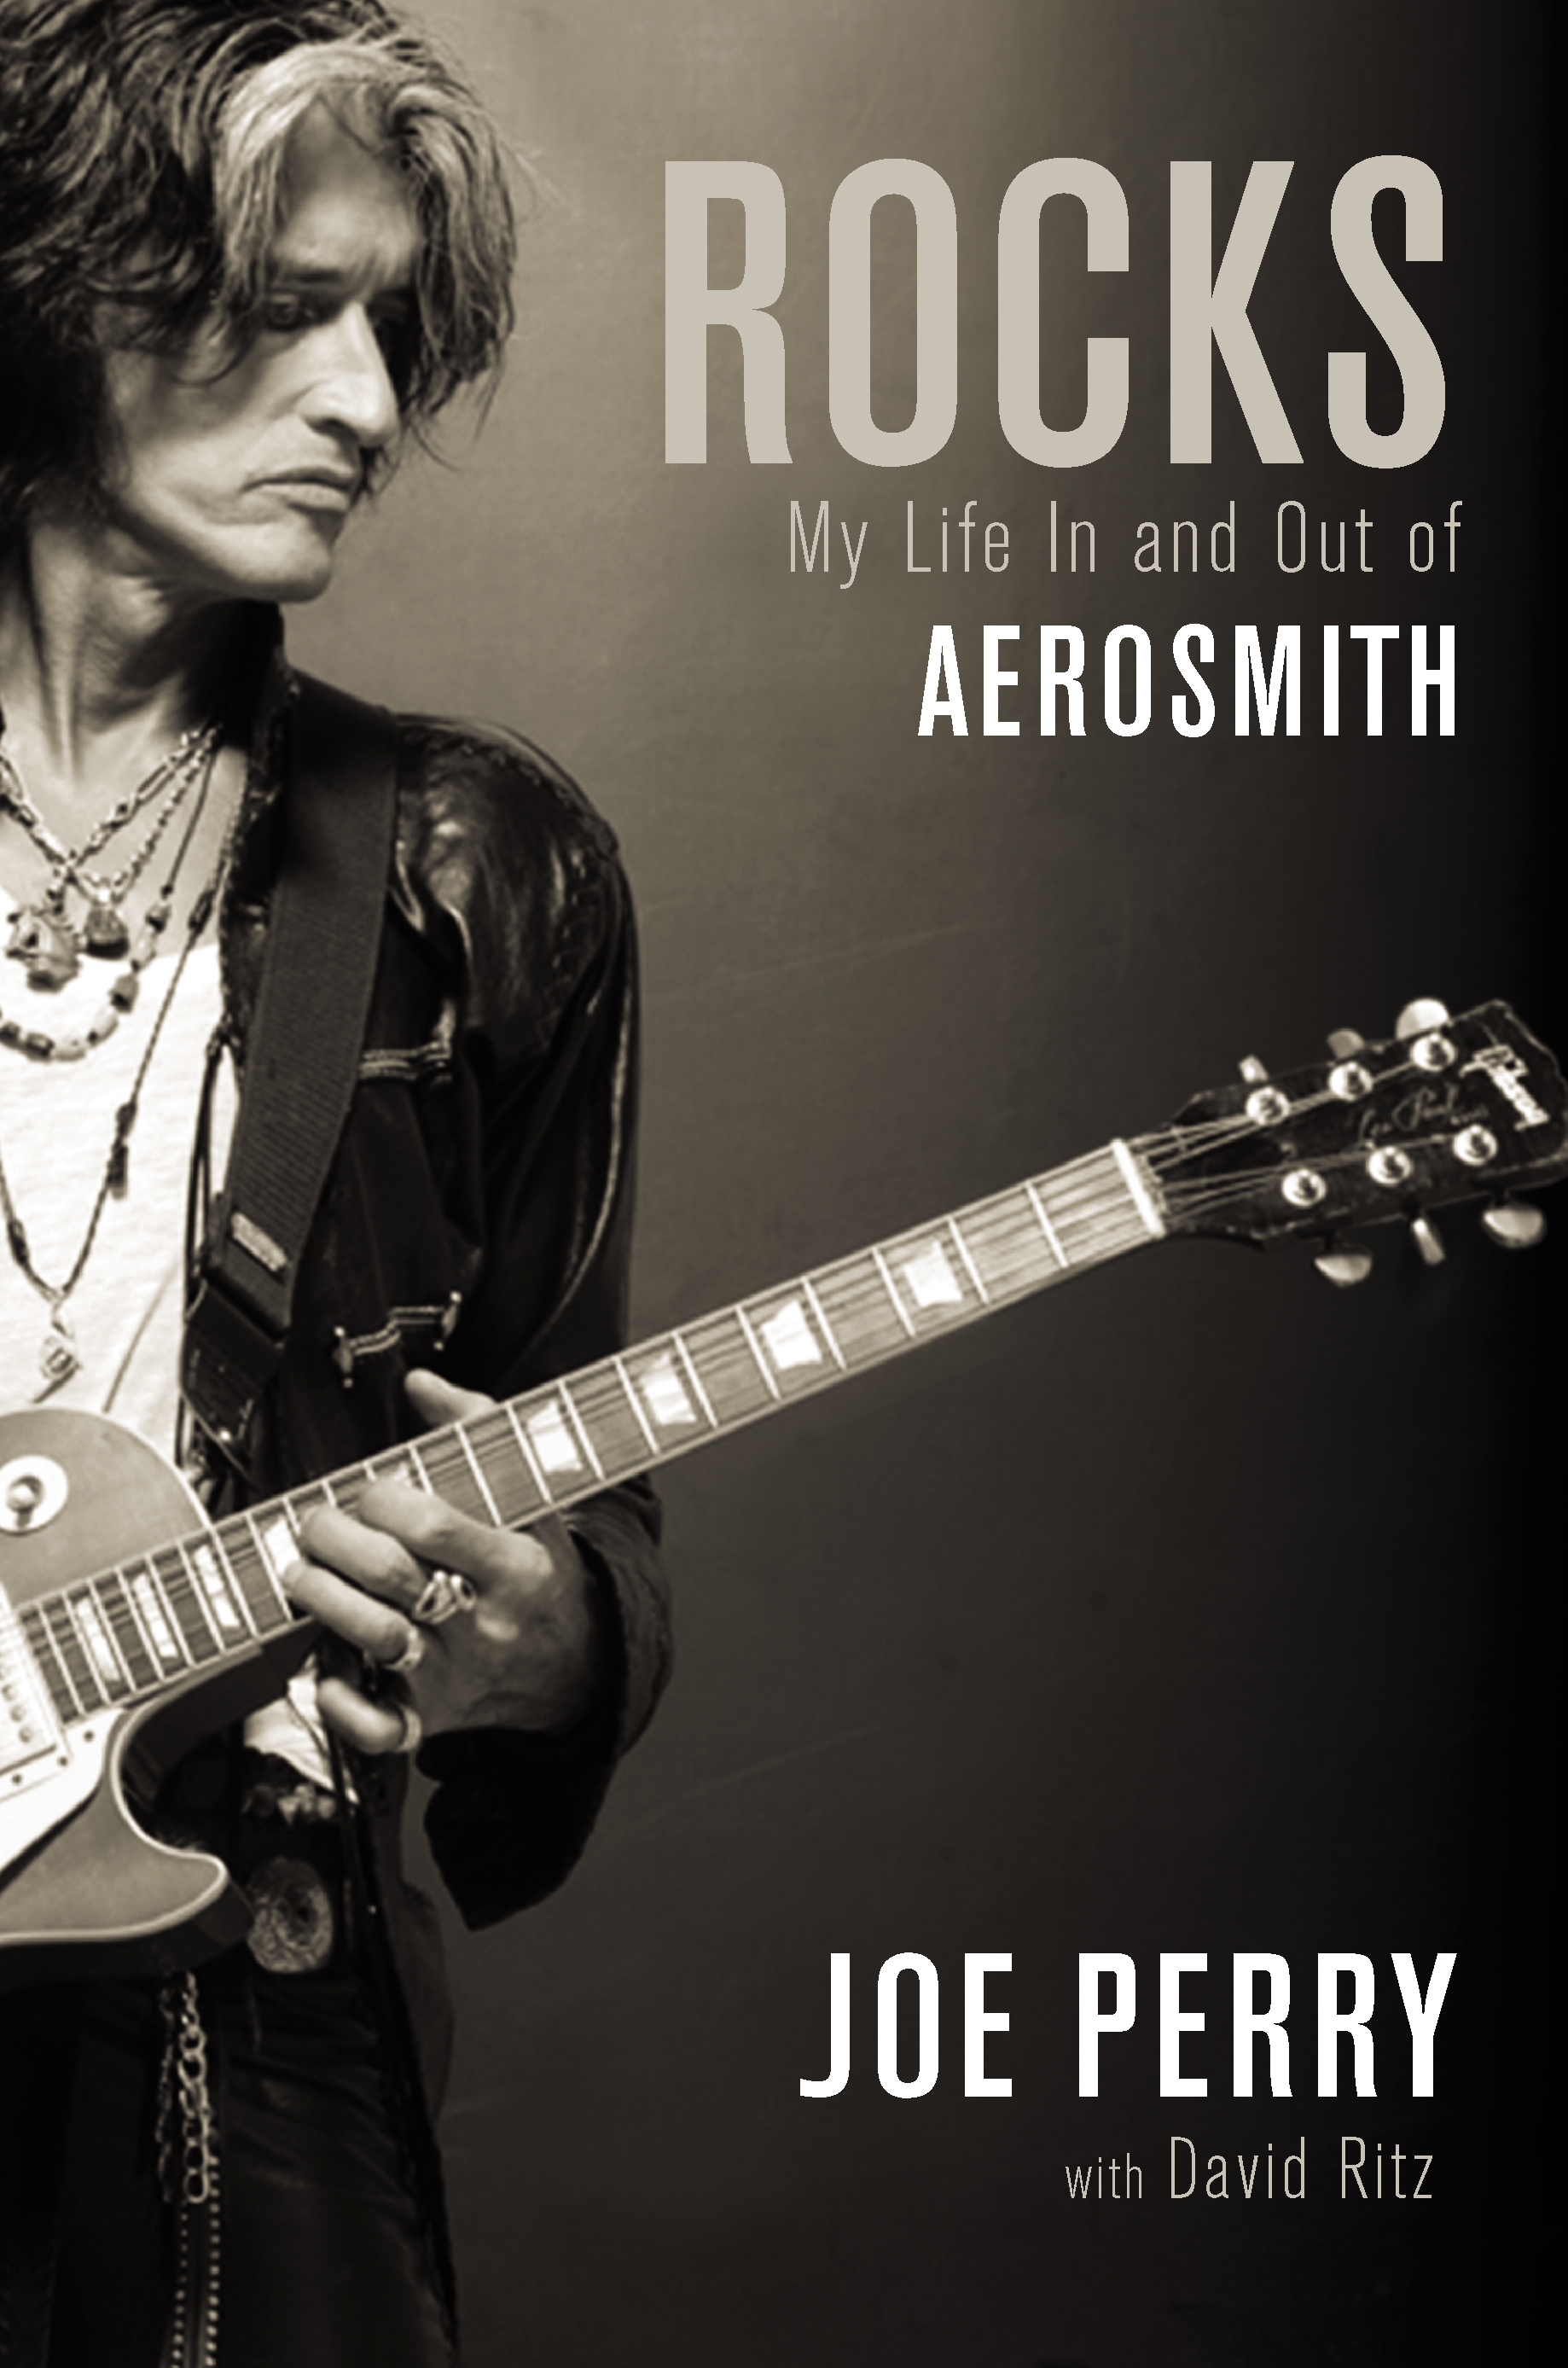 rocks-minha-vida-dentro-e-fora-do-aerosmith-joe-perry